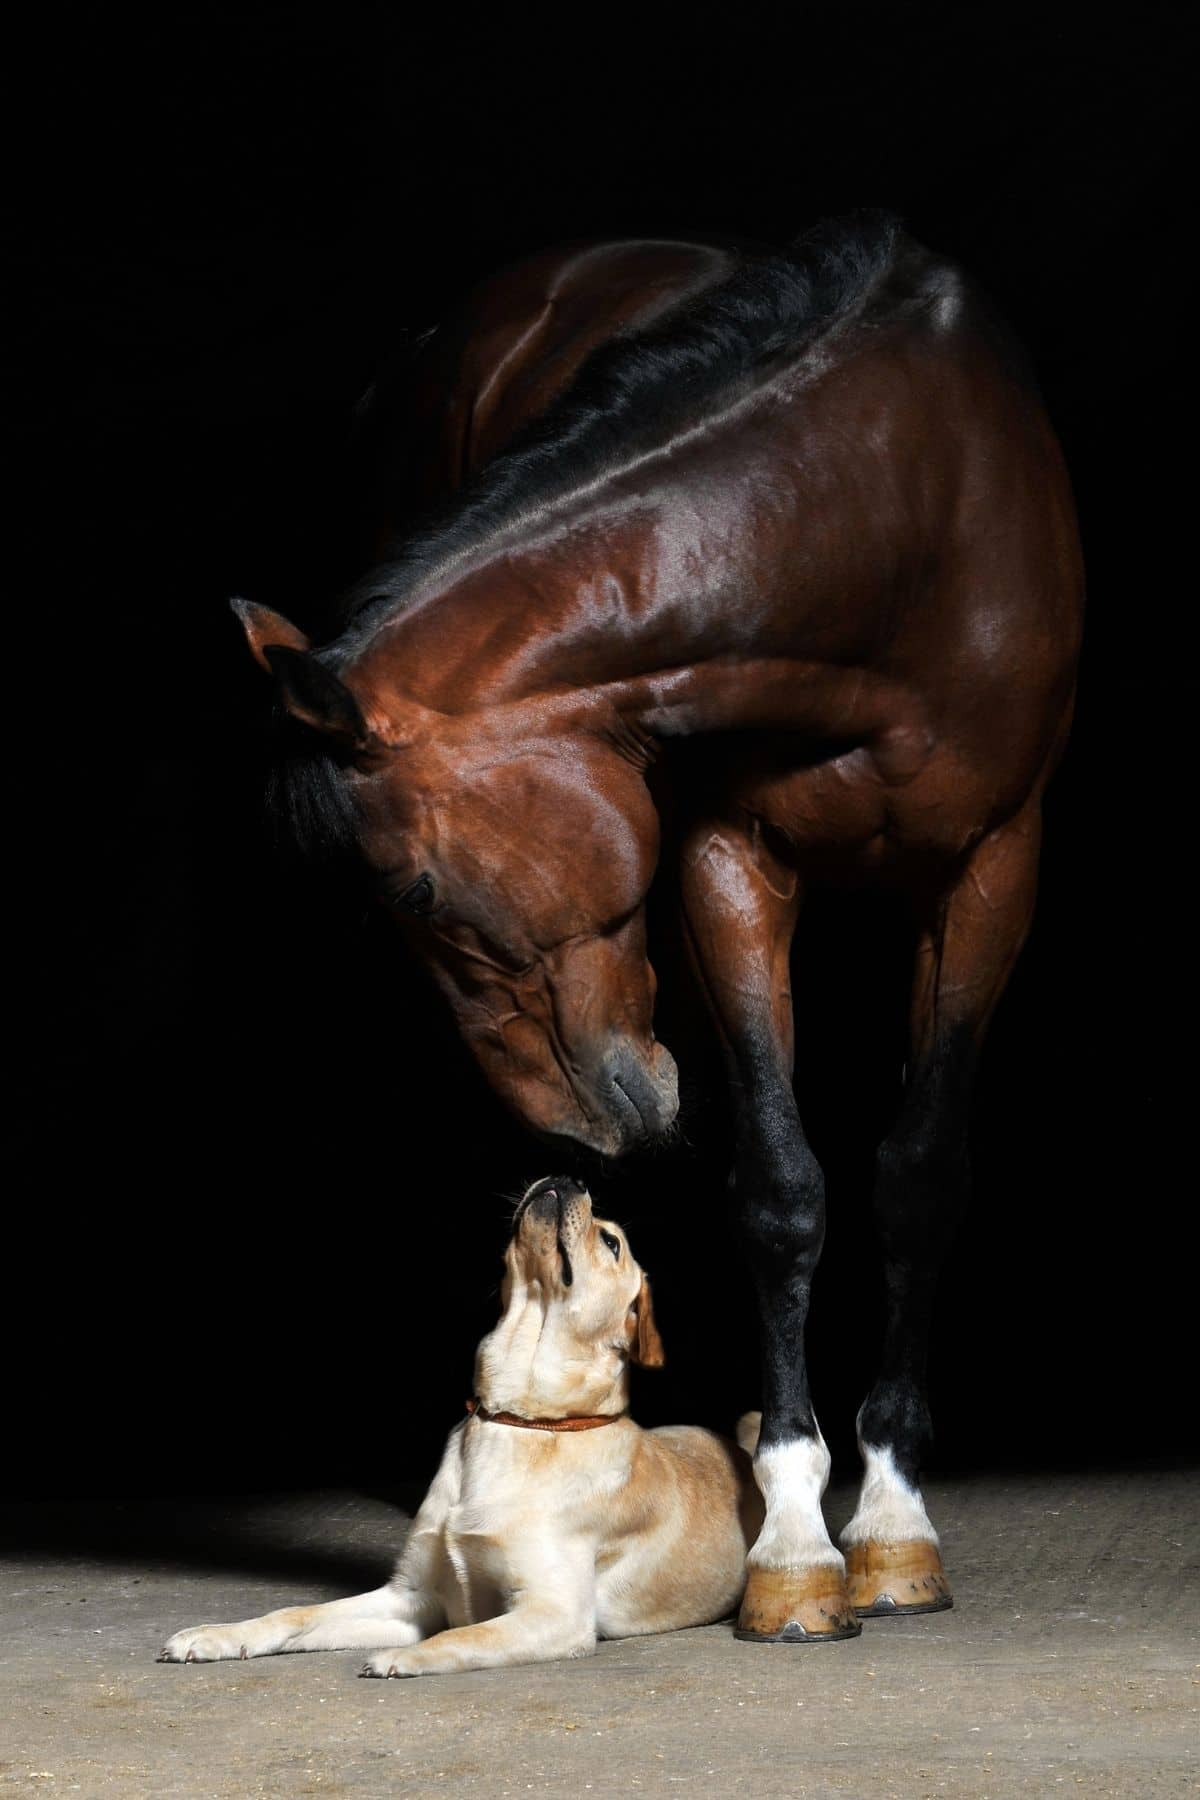 Dark brown horse touching noses with dog